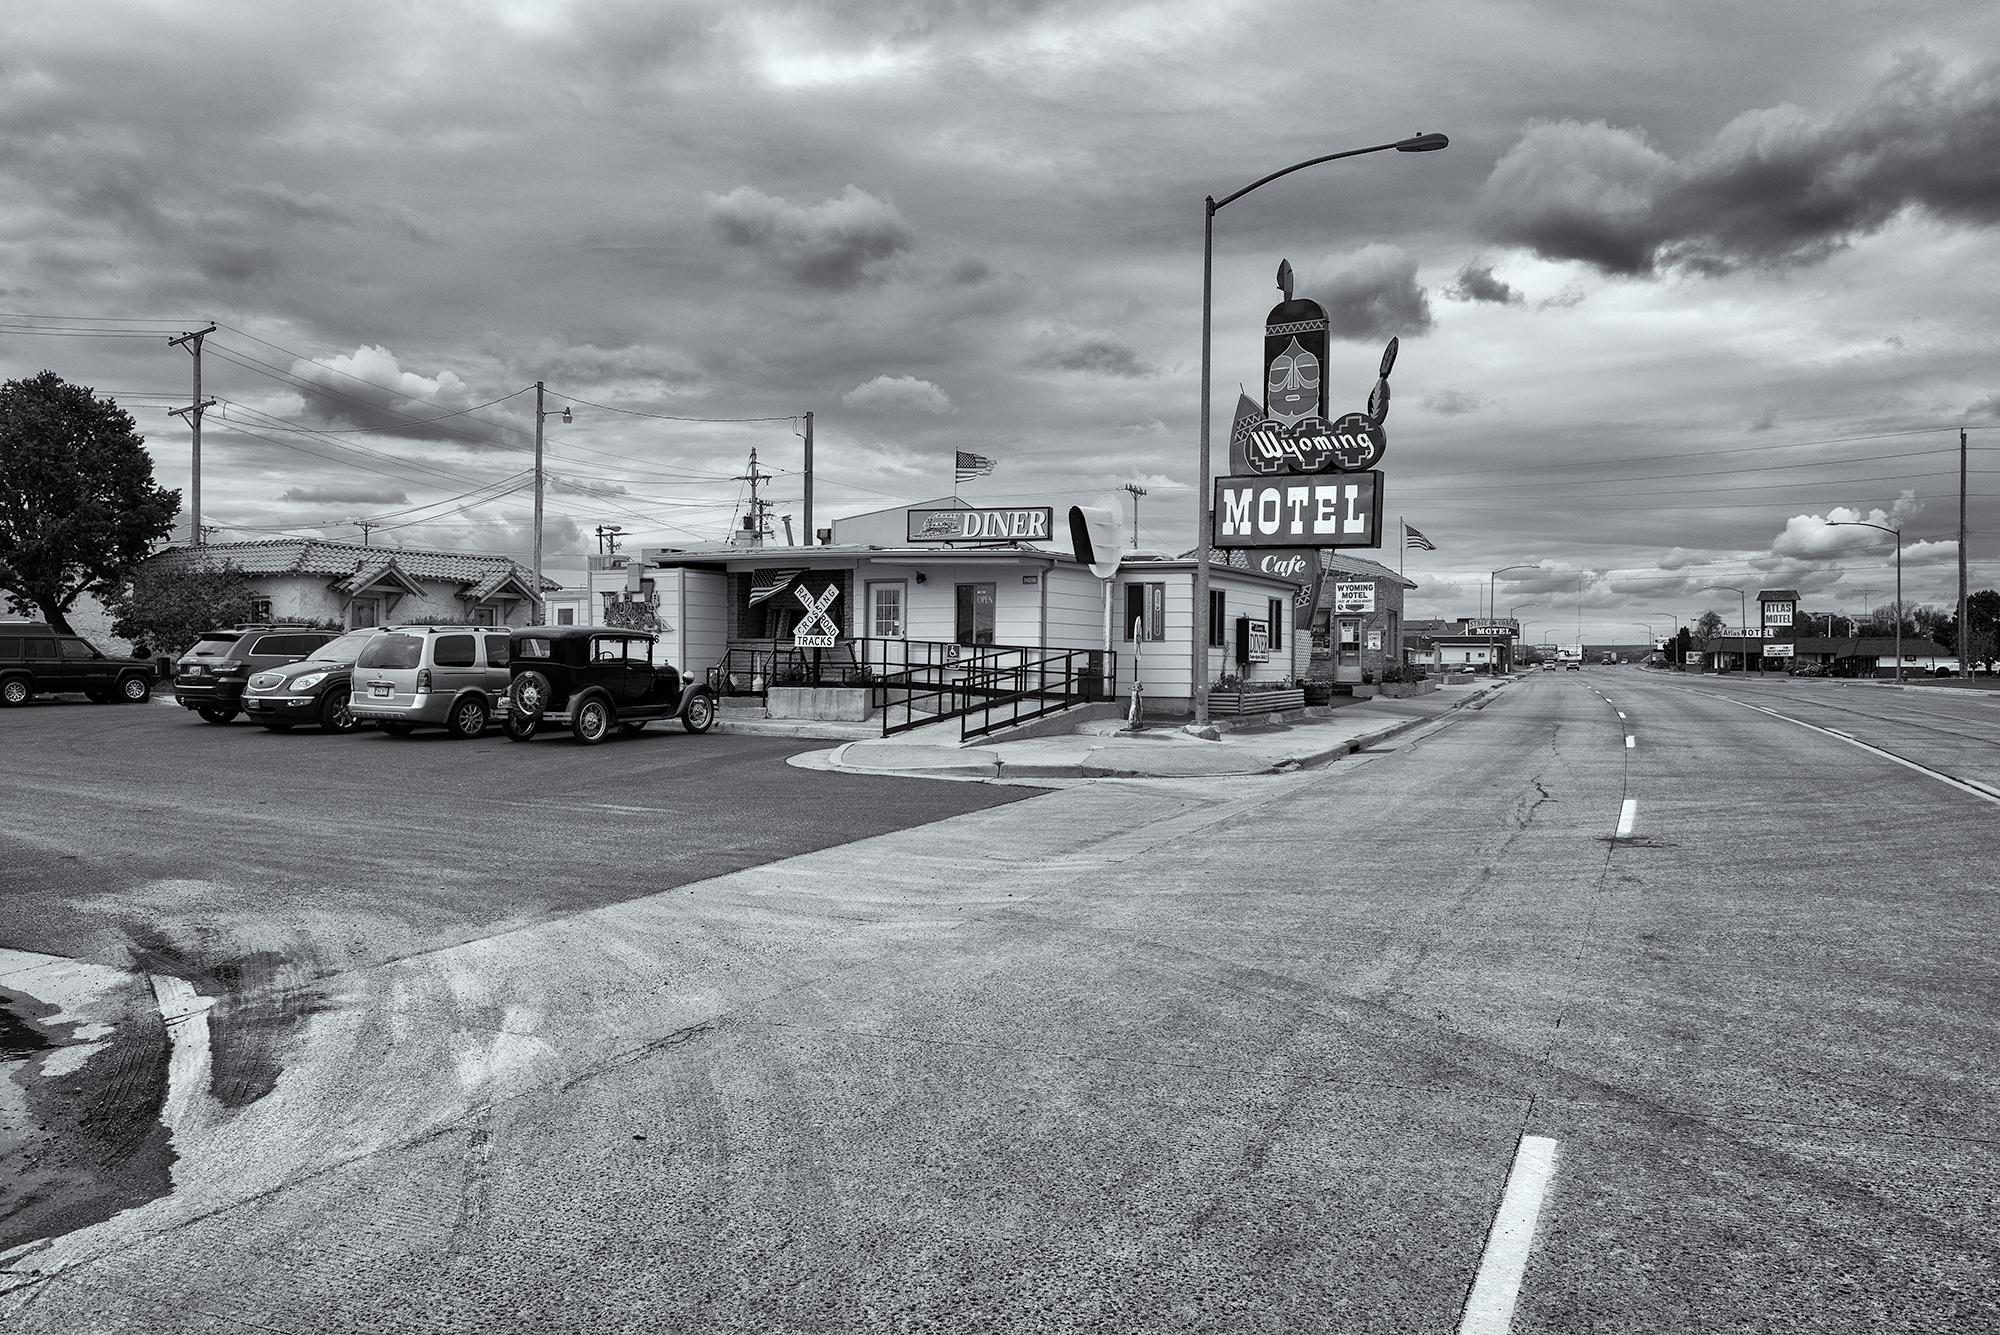 Wyoming Motel and Cafe. Cheyenne, Wyoming, 2016